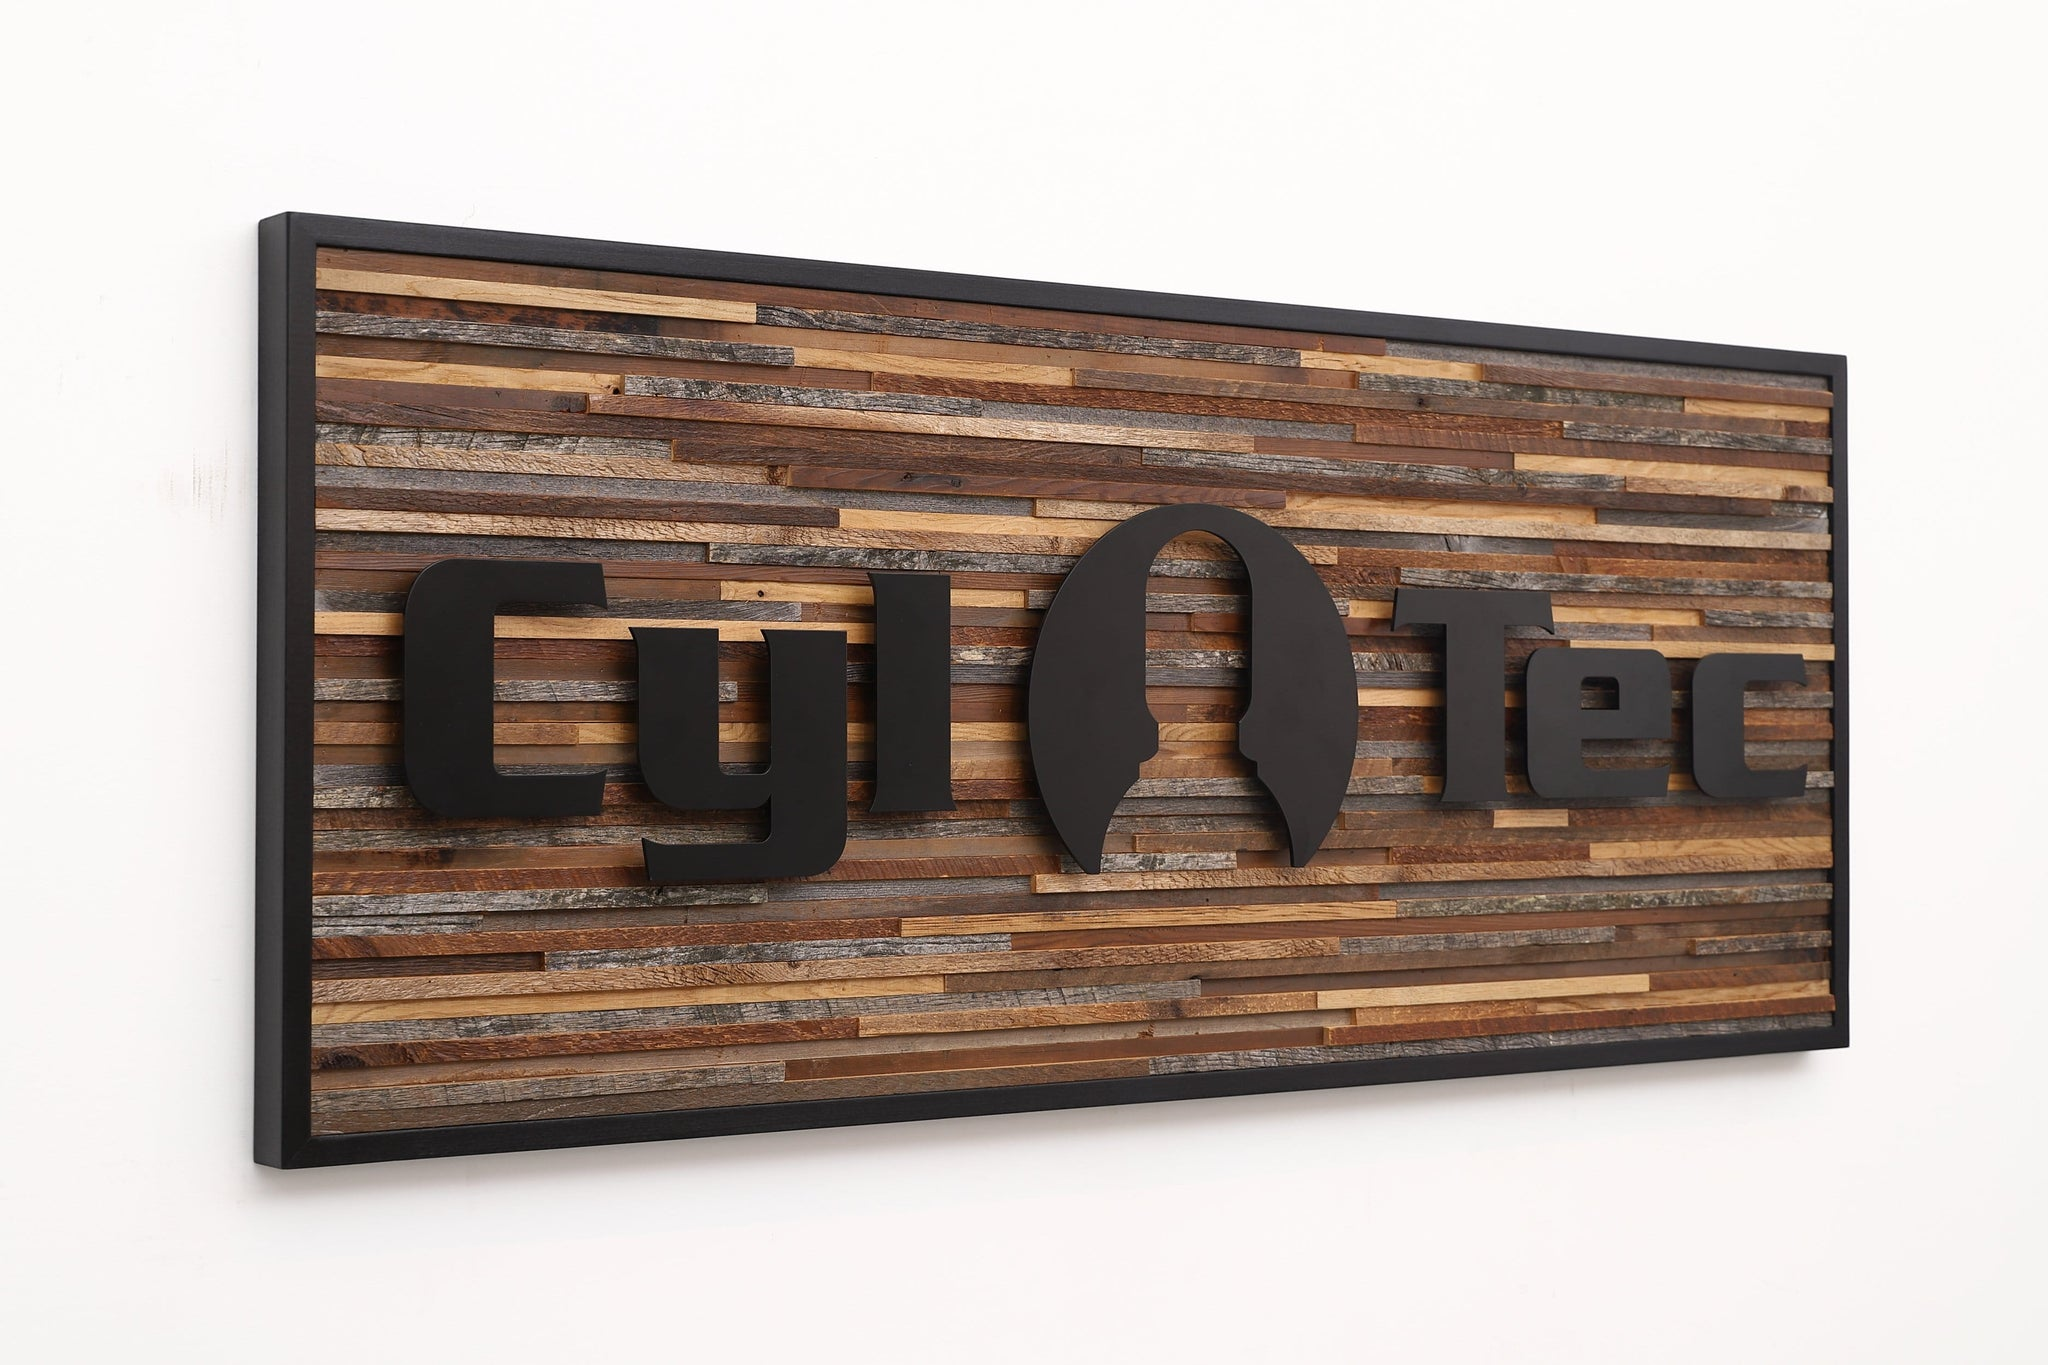 wood and metal company sign